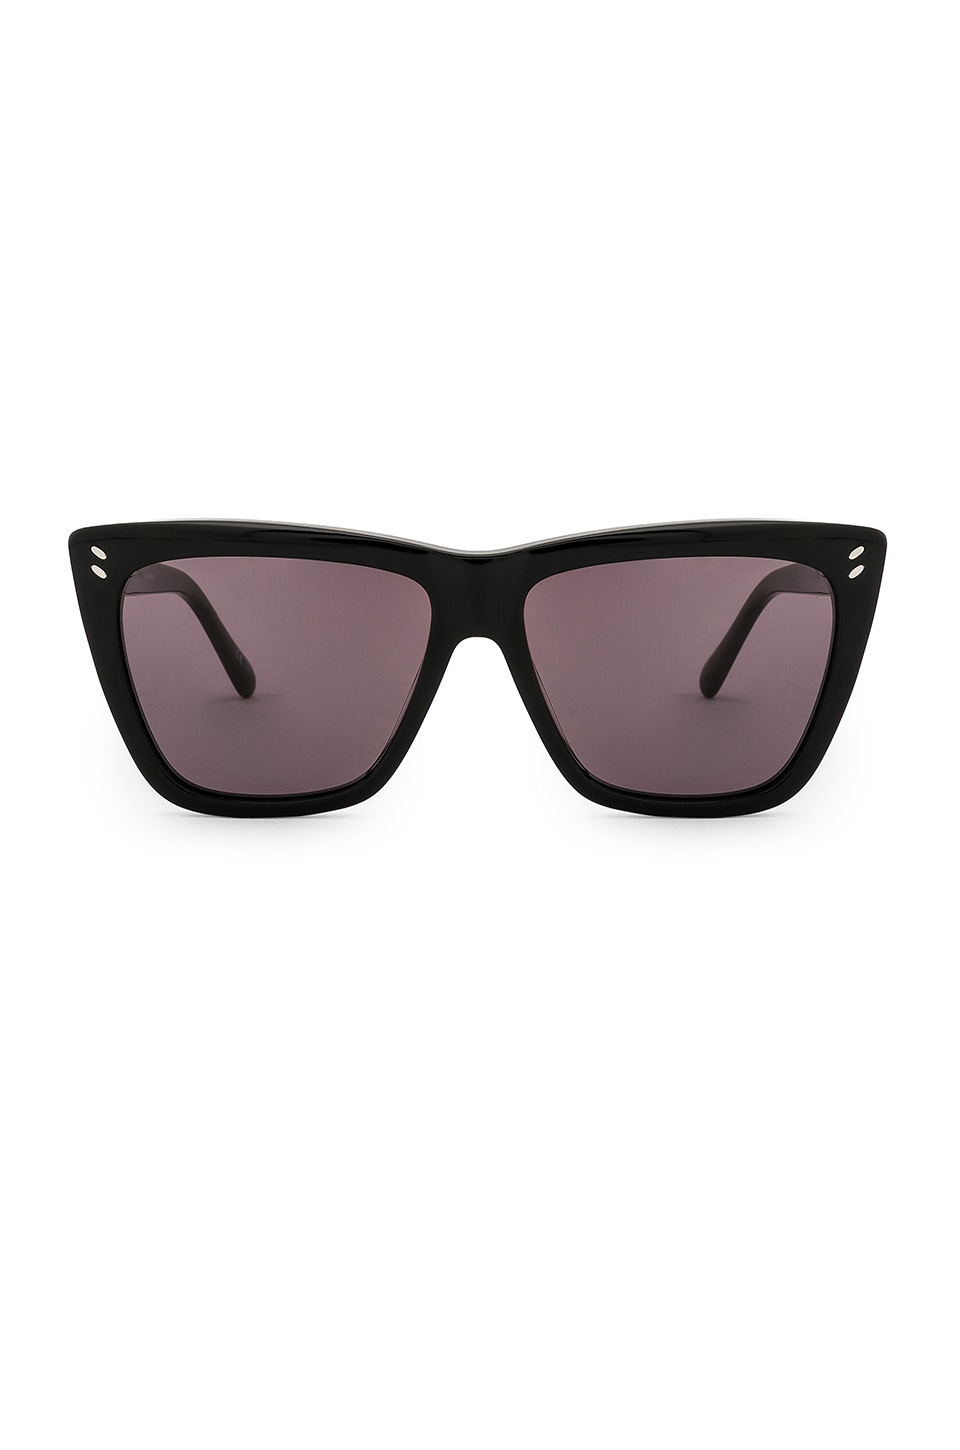 Stella McCartney Square Acetate in Shiny Black & Gradient Grey